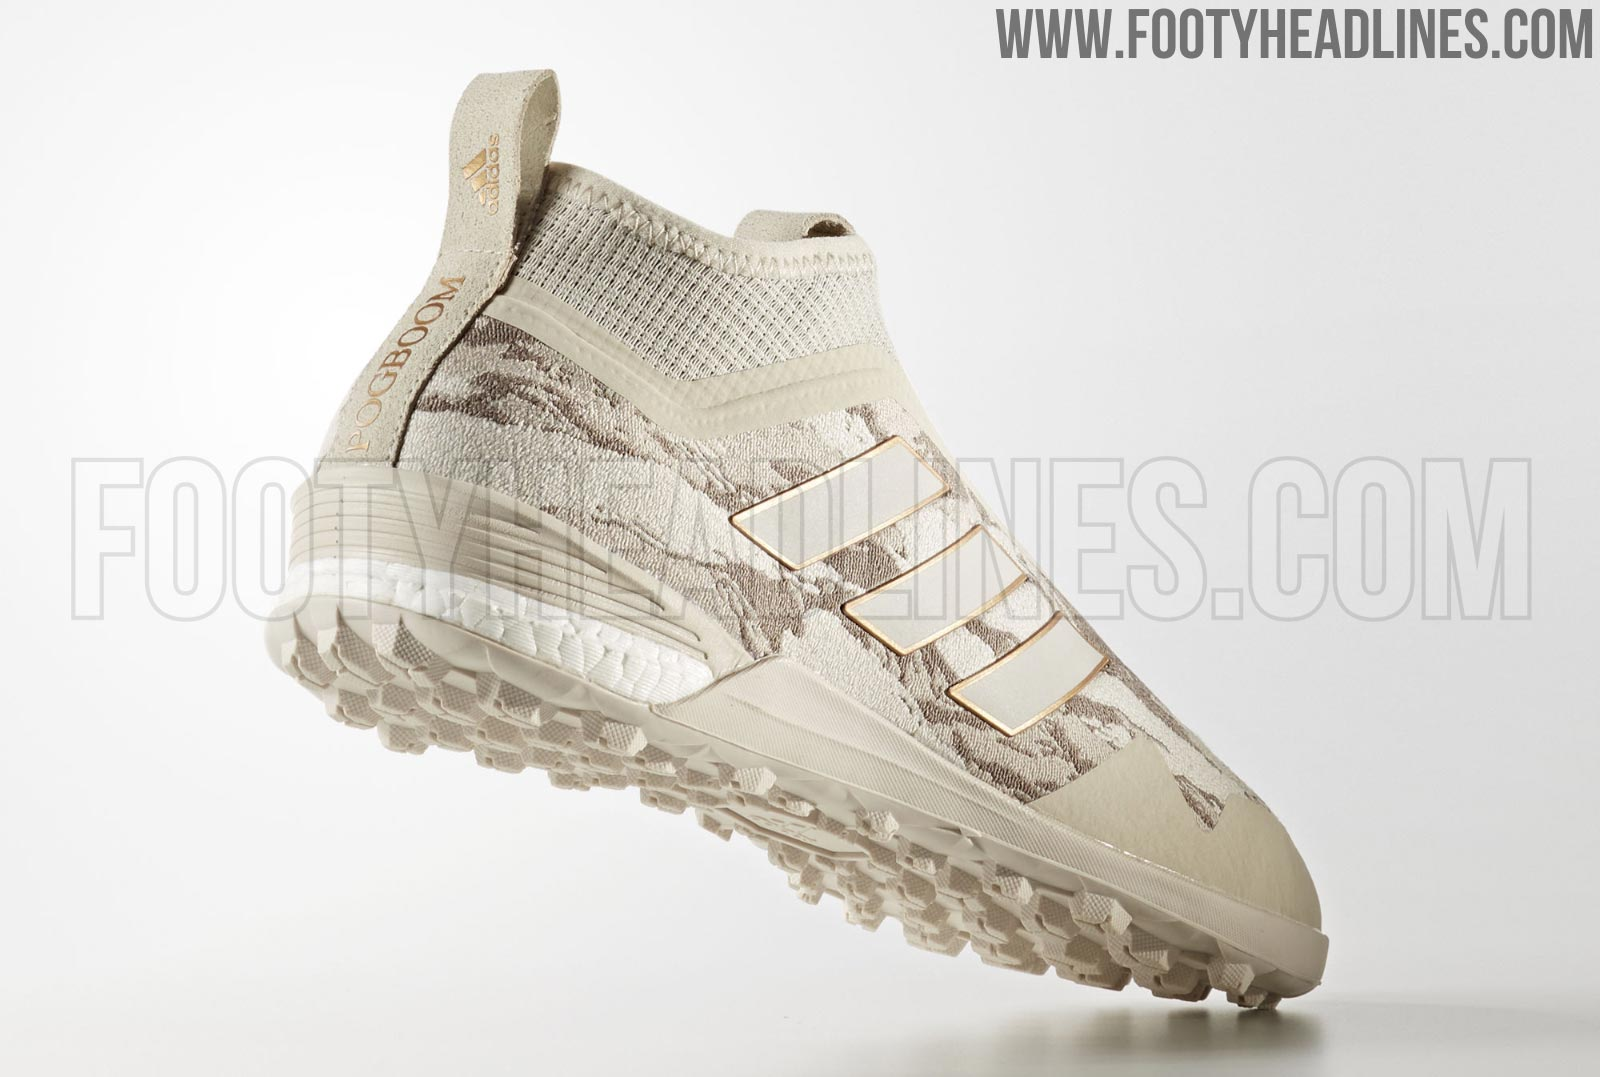 Ace ExclusifFuite Des Pogboom Adidas Chaussures 17Purecontrol WEH9D2I